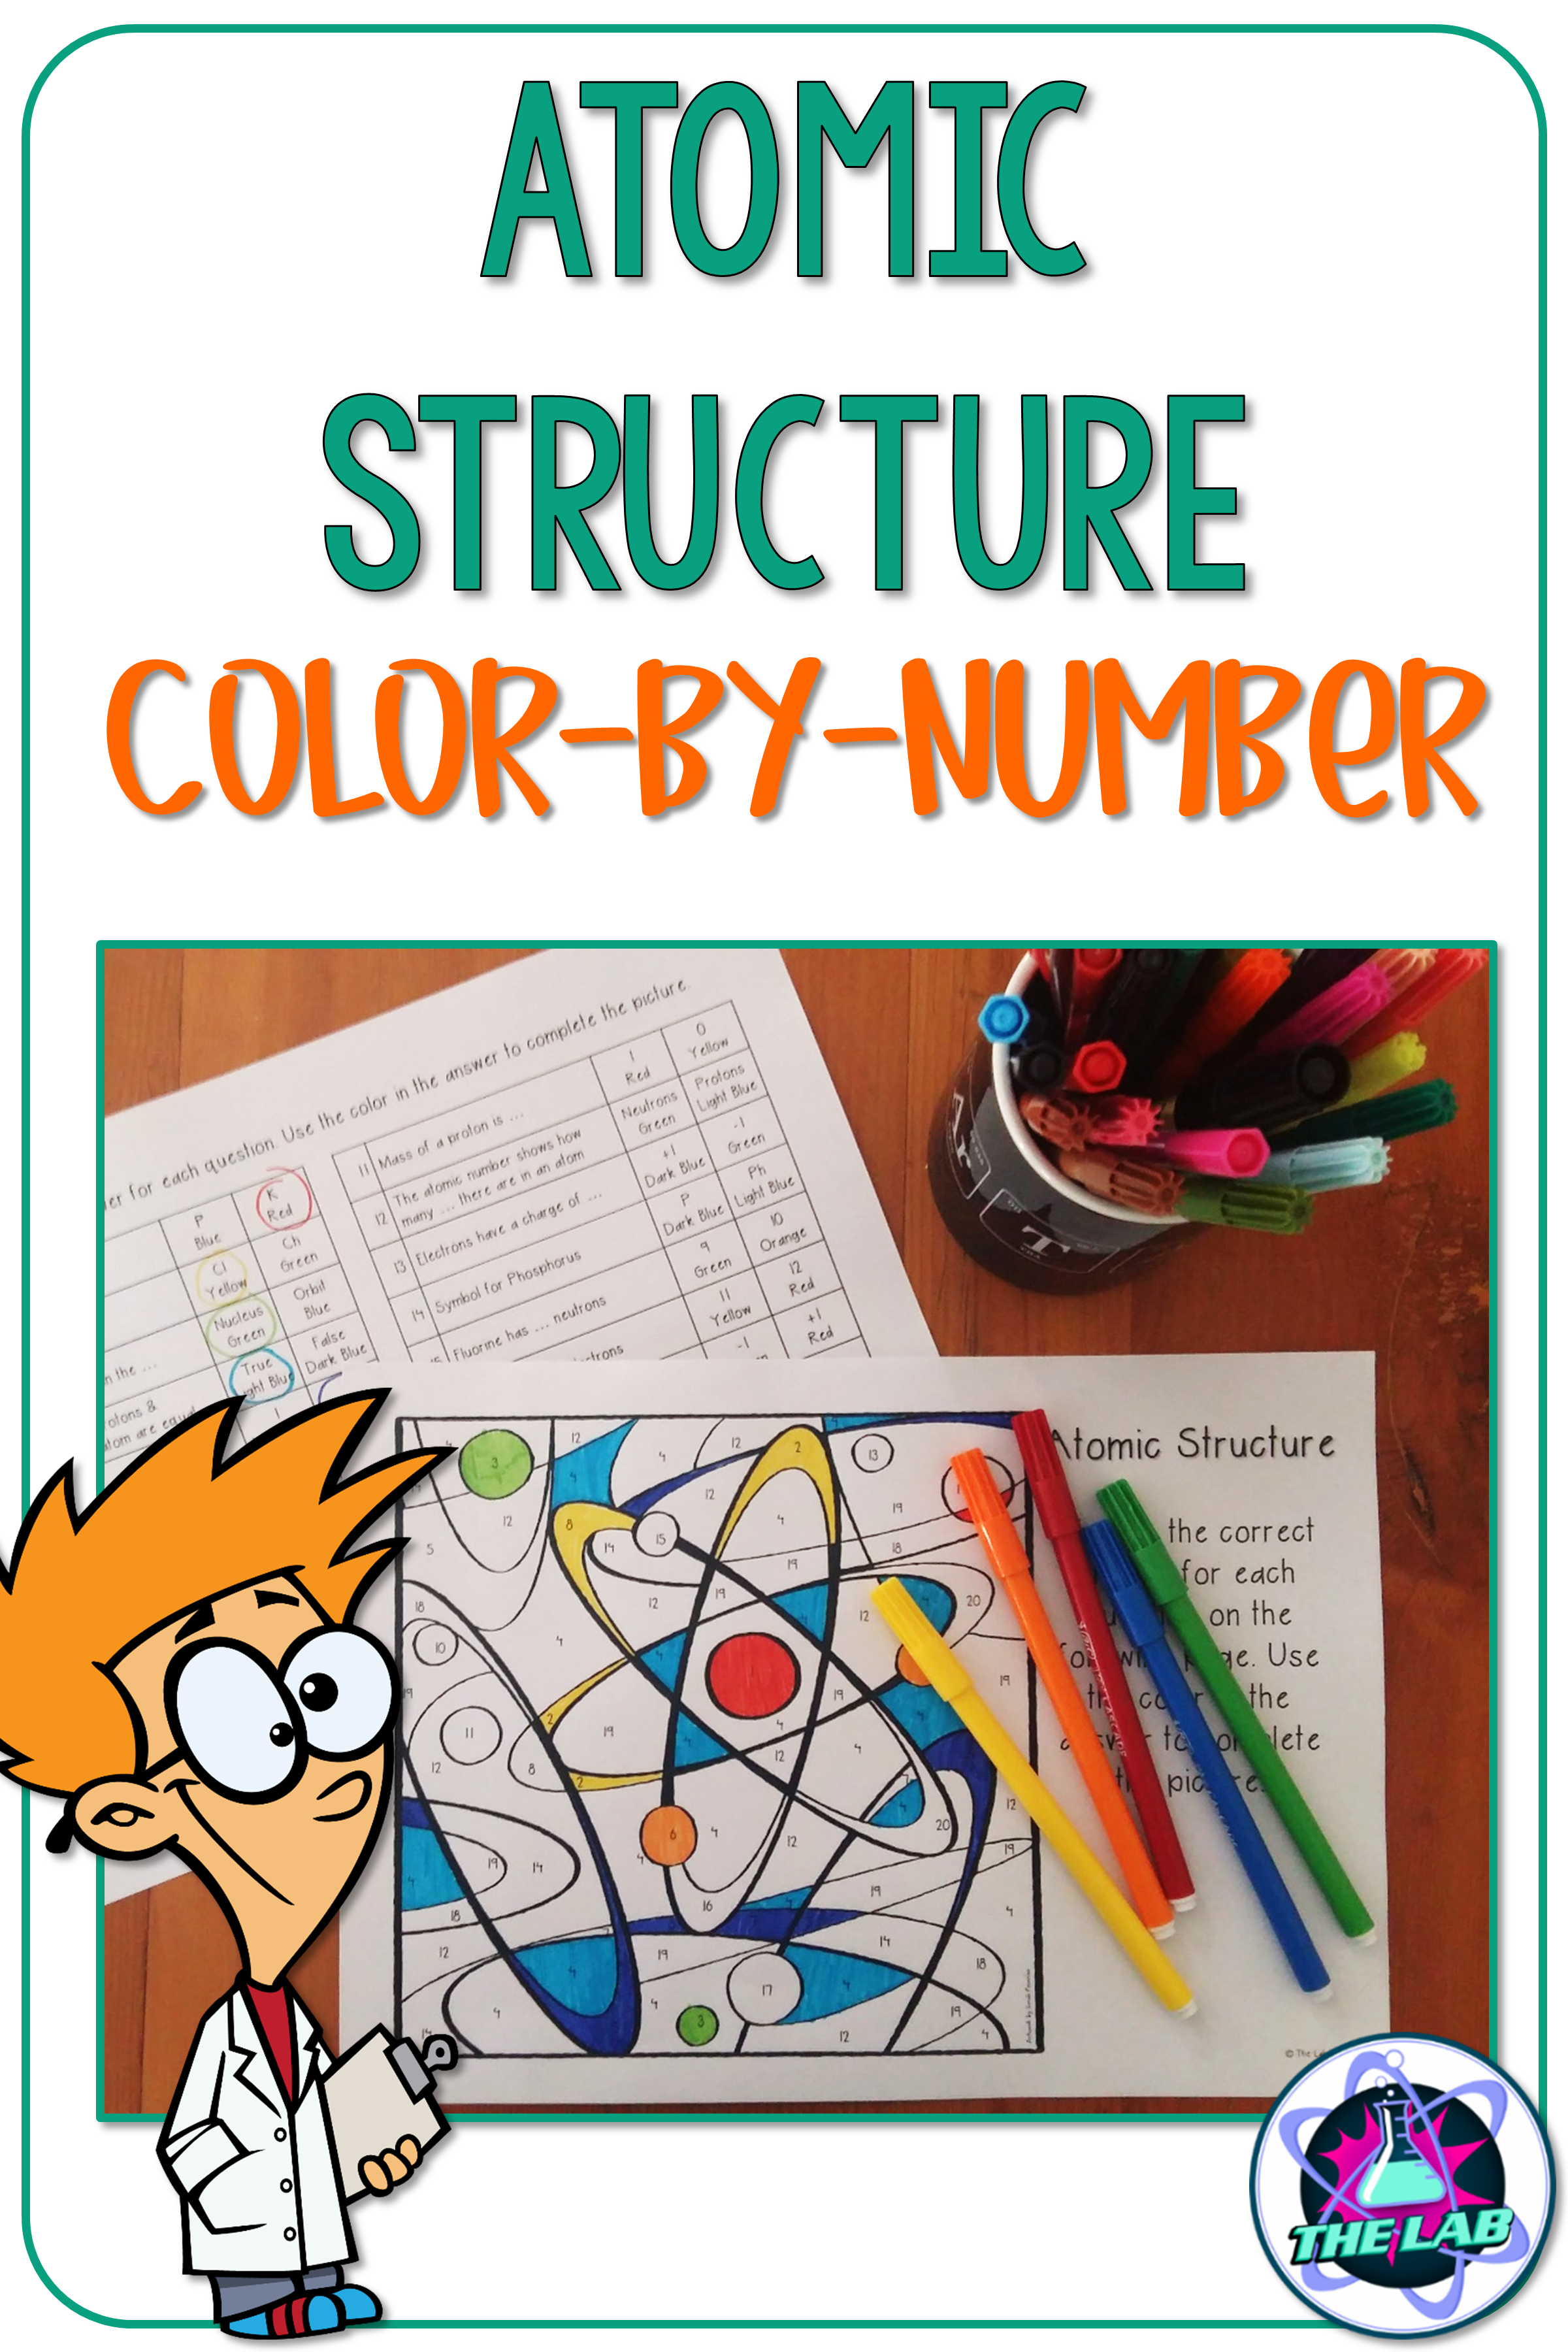 Atomic Structure Science Color By Number Review Activity